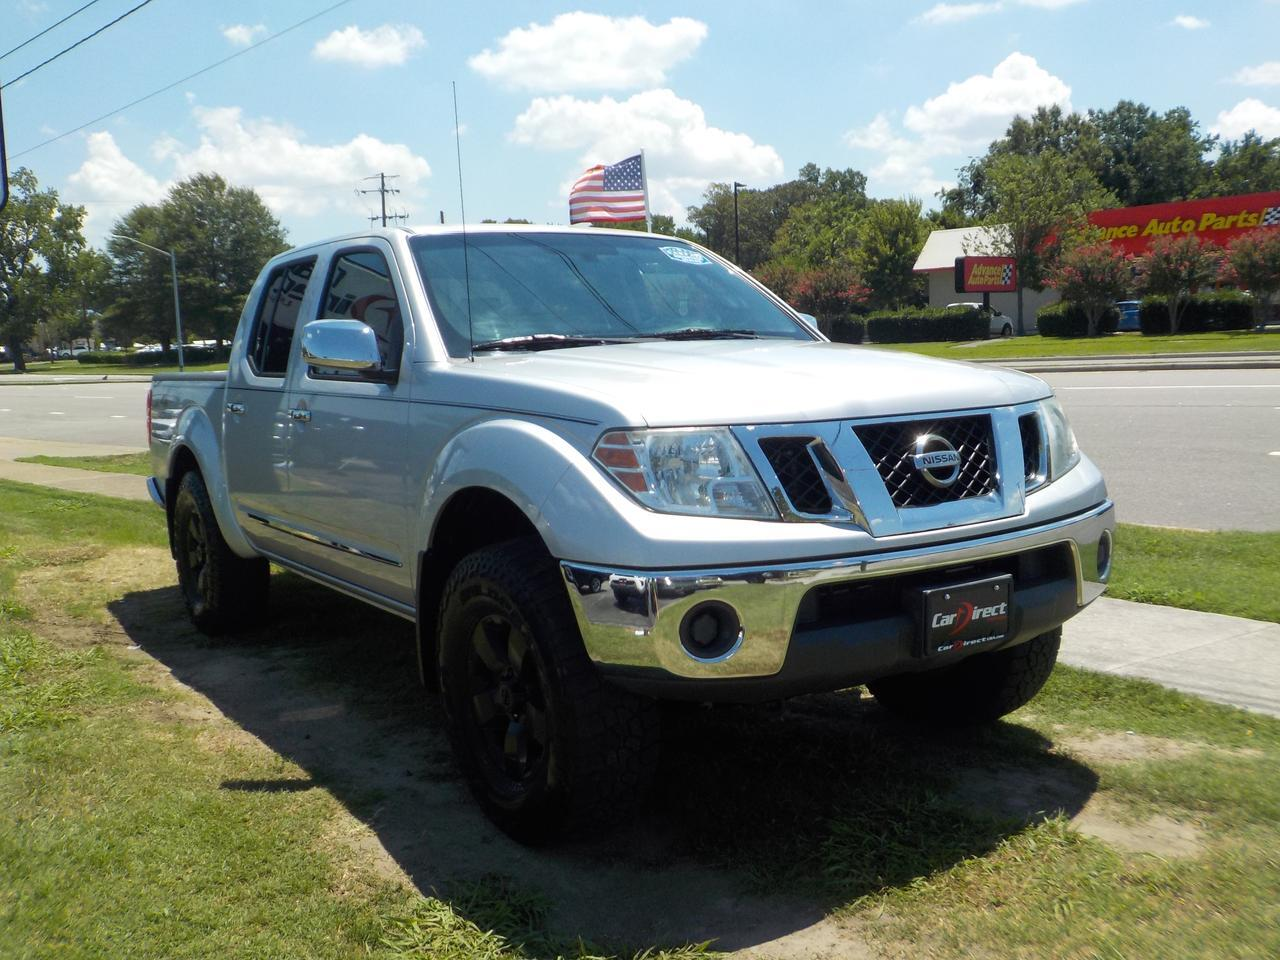 2010 NISSAN FRONTIER SE CREW CAB 4X4, BED LINER, TOW, SUNROOF, KEYLESS ENTRY, CRUISE CONTROL, DAYTIME RUNNING LIGHTS! Virginia Beach VA